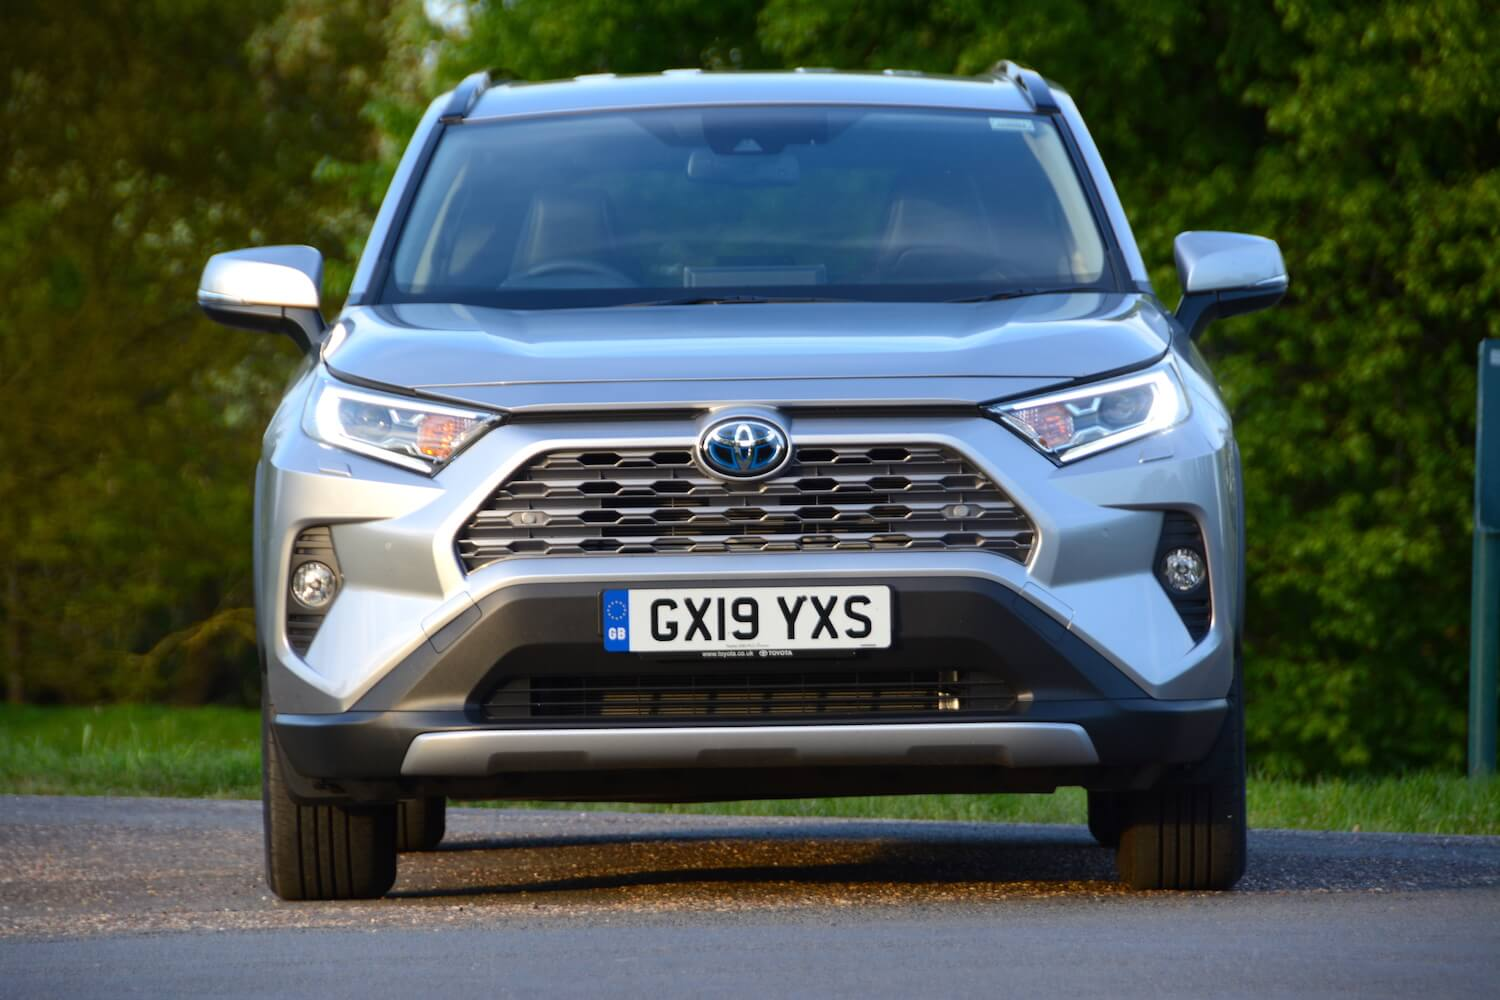 toyota rav4 excel 2 5 hybrid 2wd review greencarguide co uk toyota rav4 excel 2 5 hybrid 2wd review